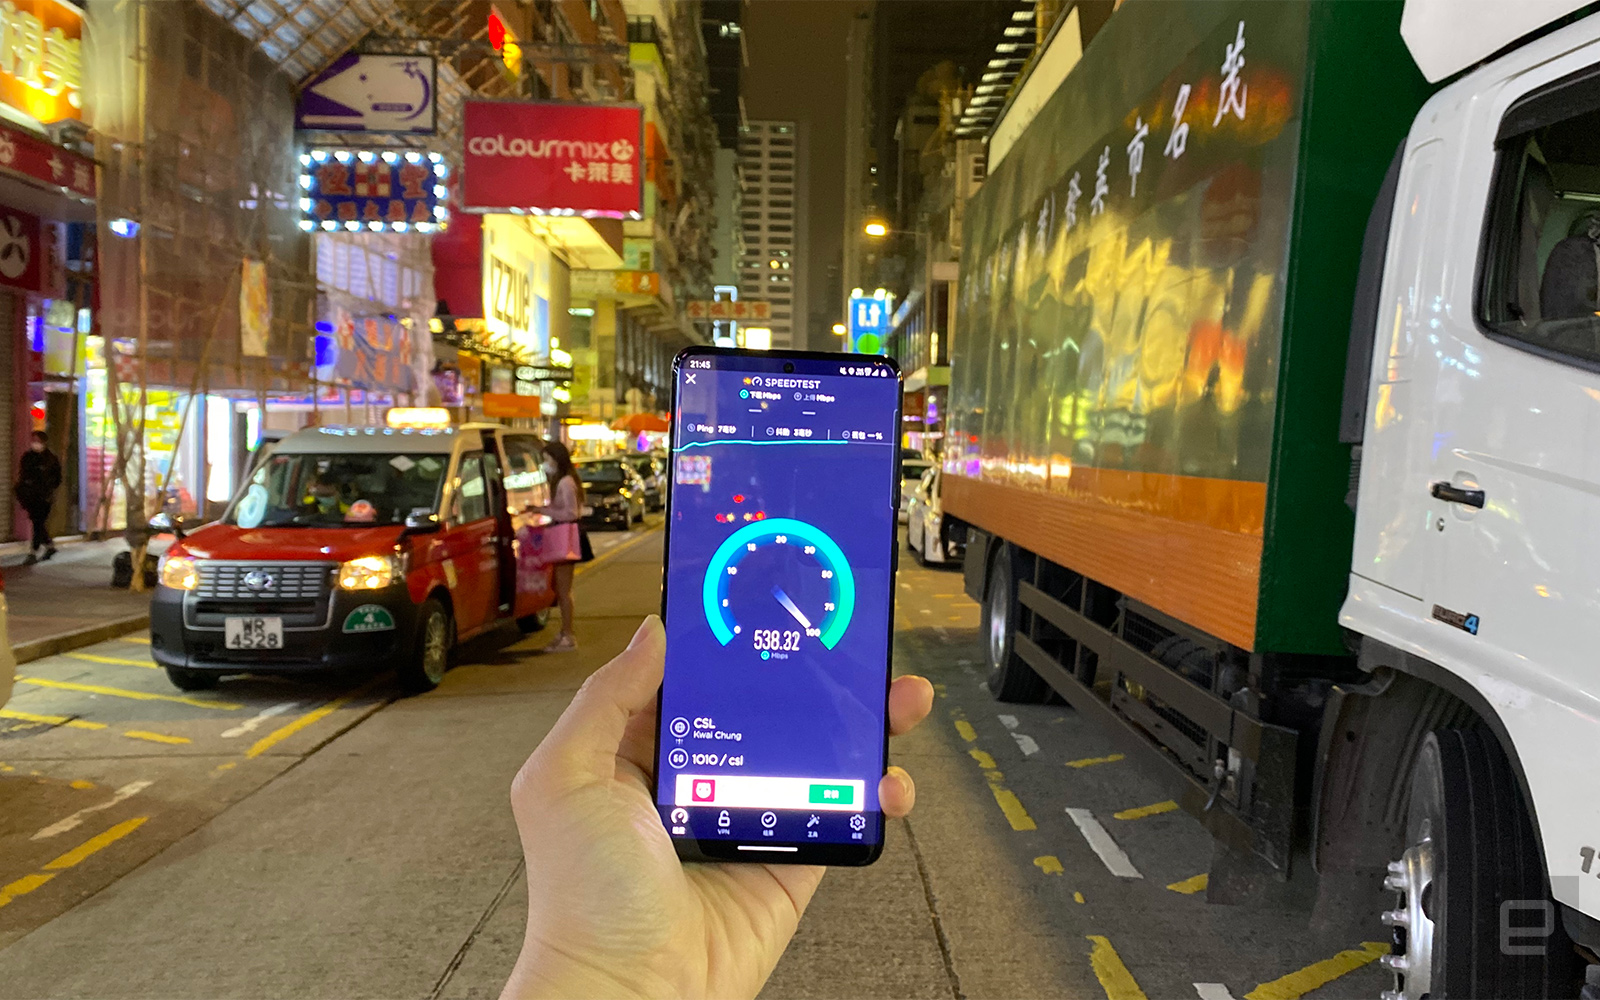 HK 5G launched first day